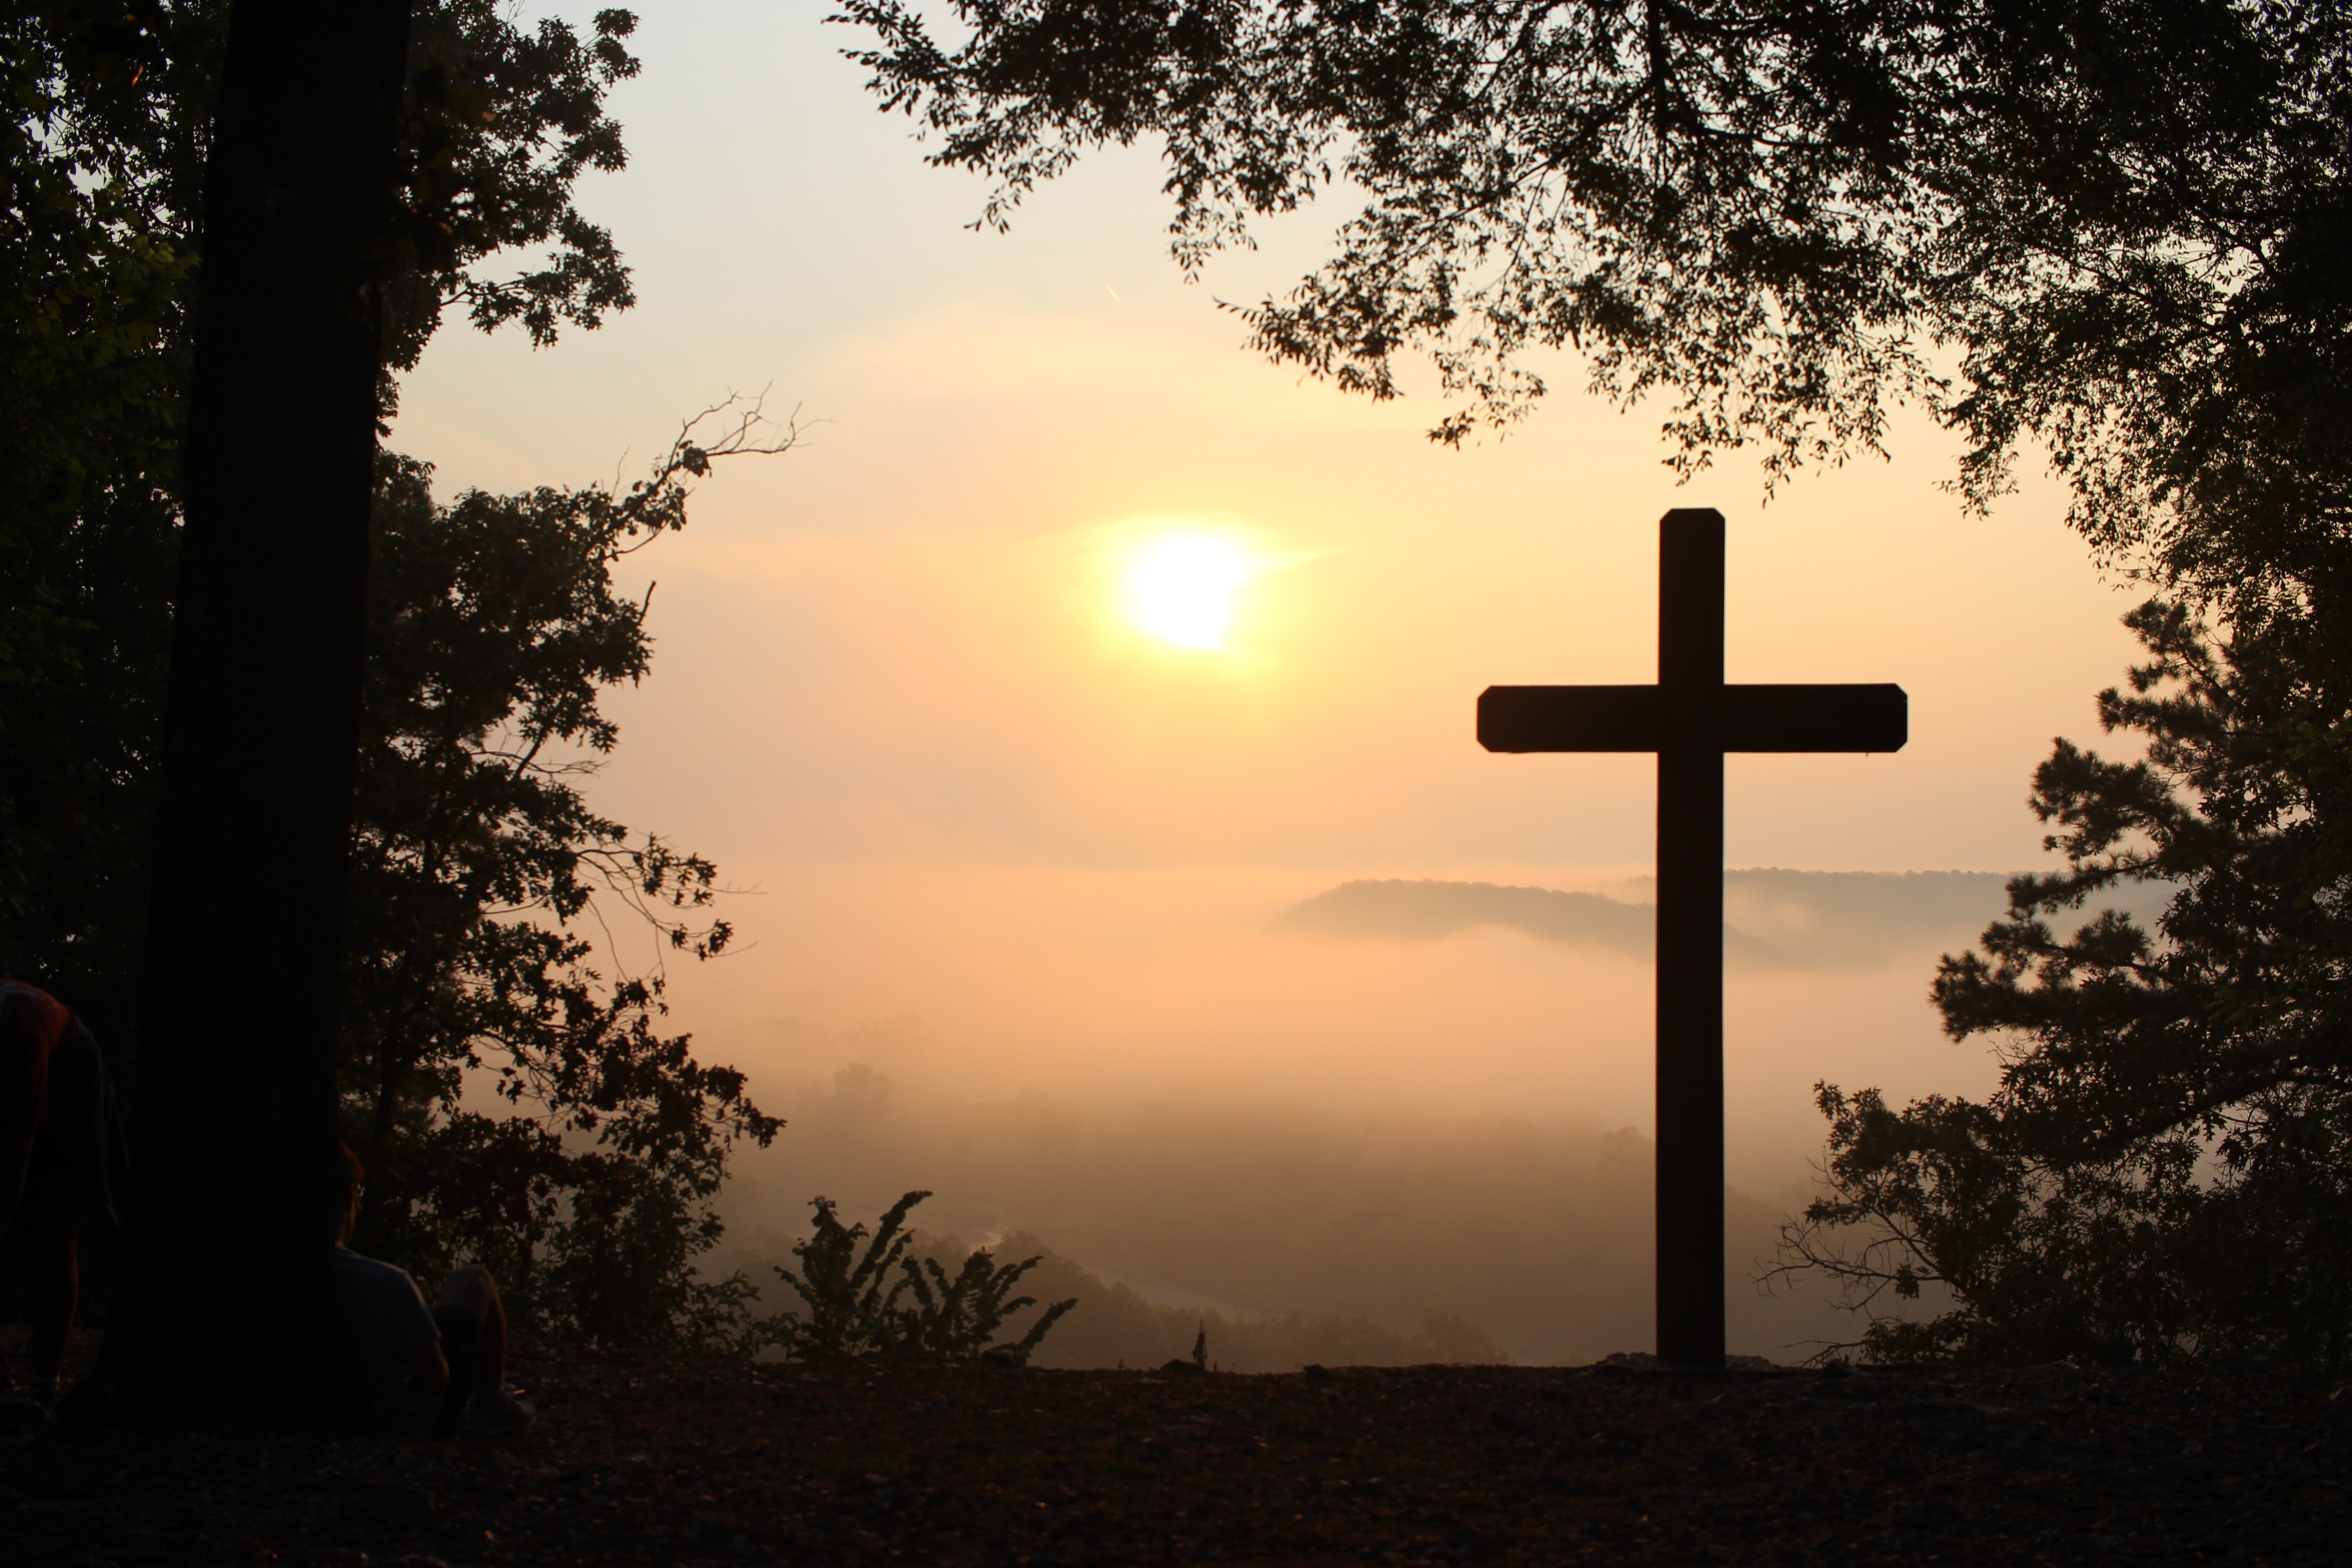 A silhouette of a cross in front of a sunset.